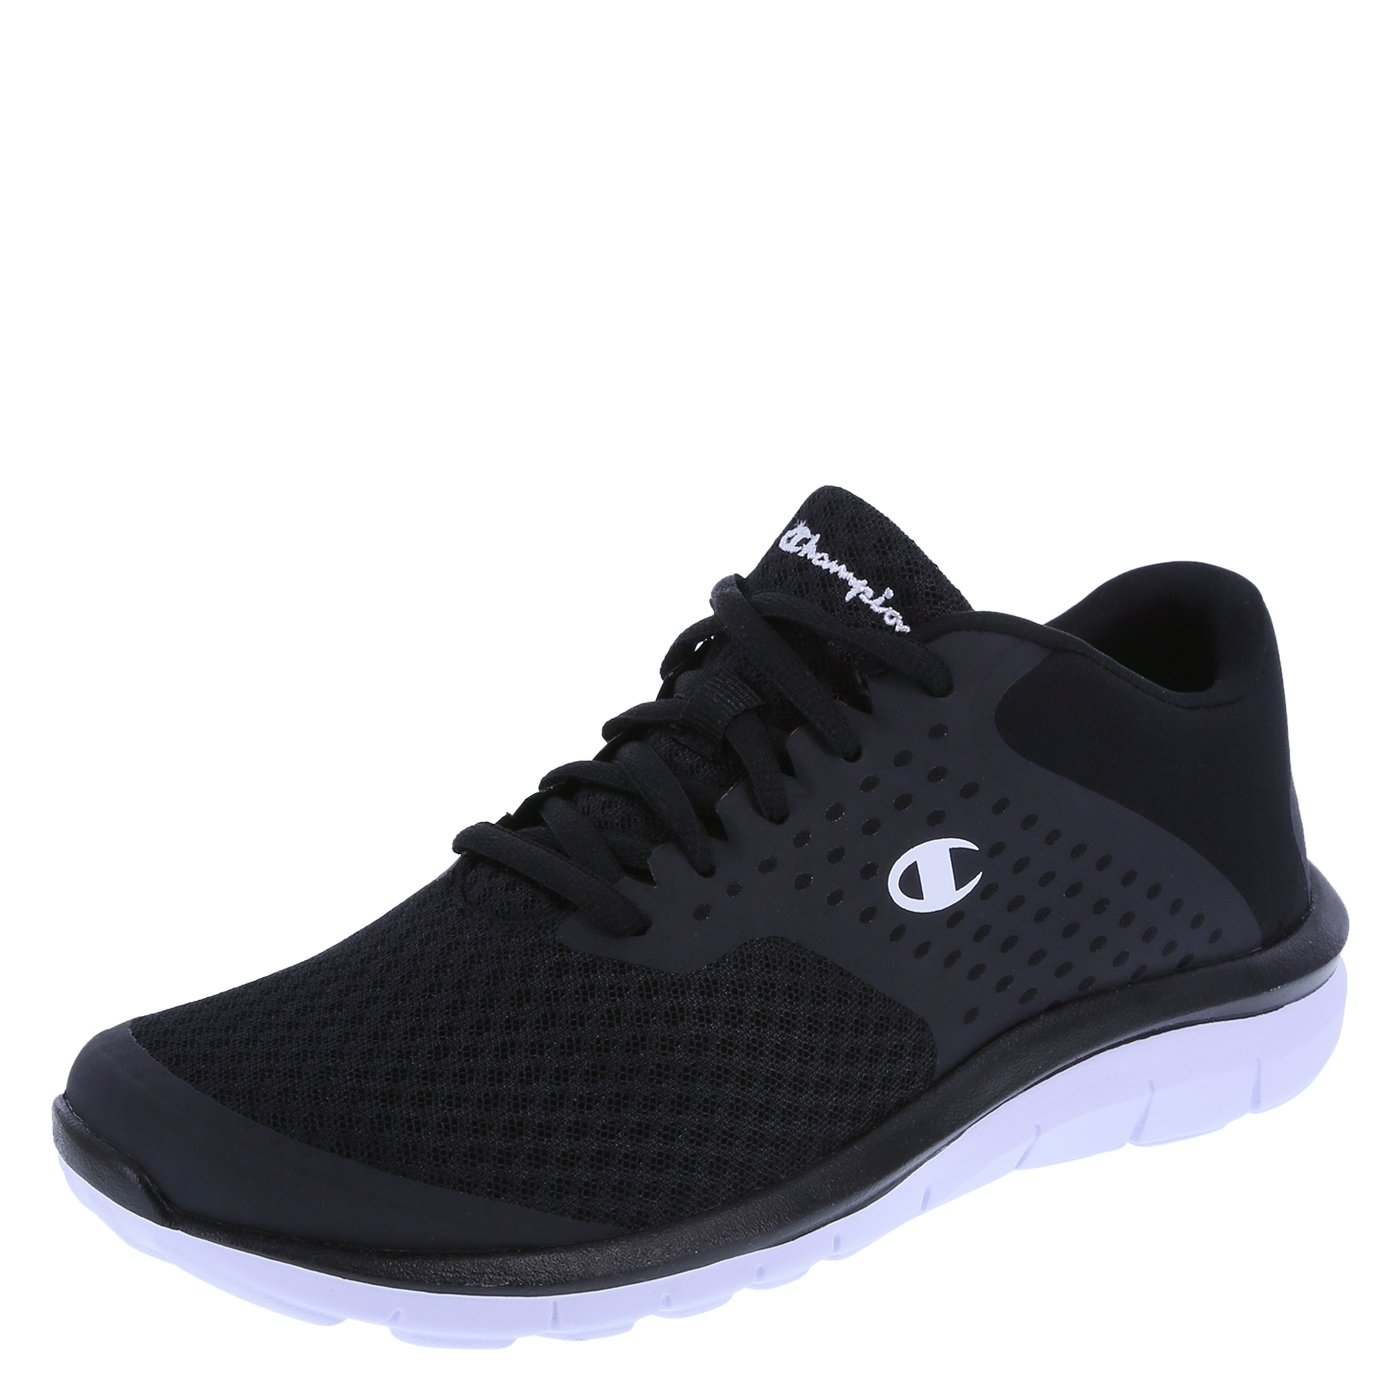 Champion Women's Gusto Cross Trainer B01J4EVPII 9.5 B(M) US|Black White